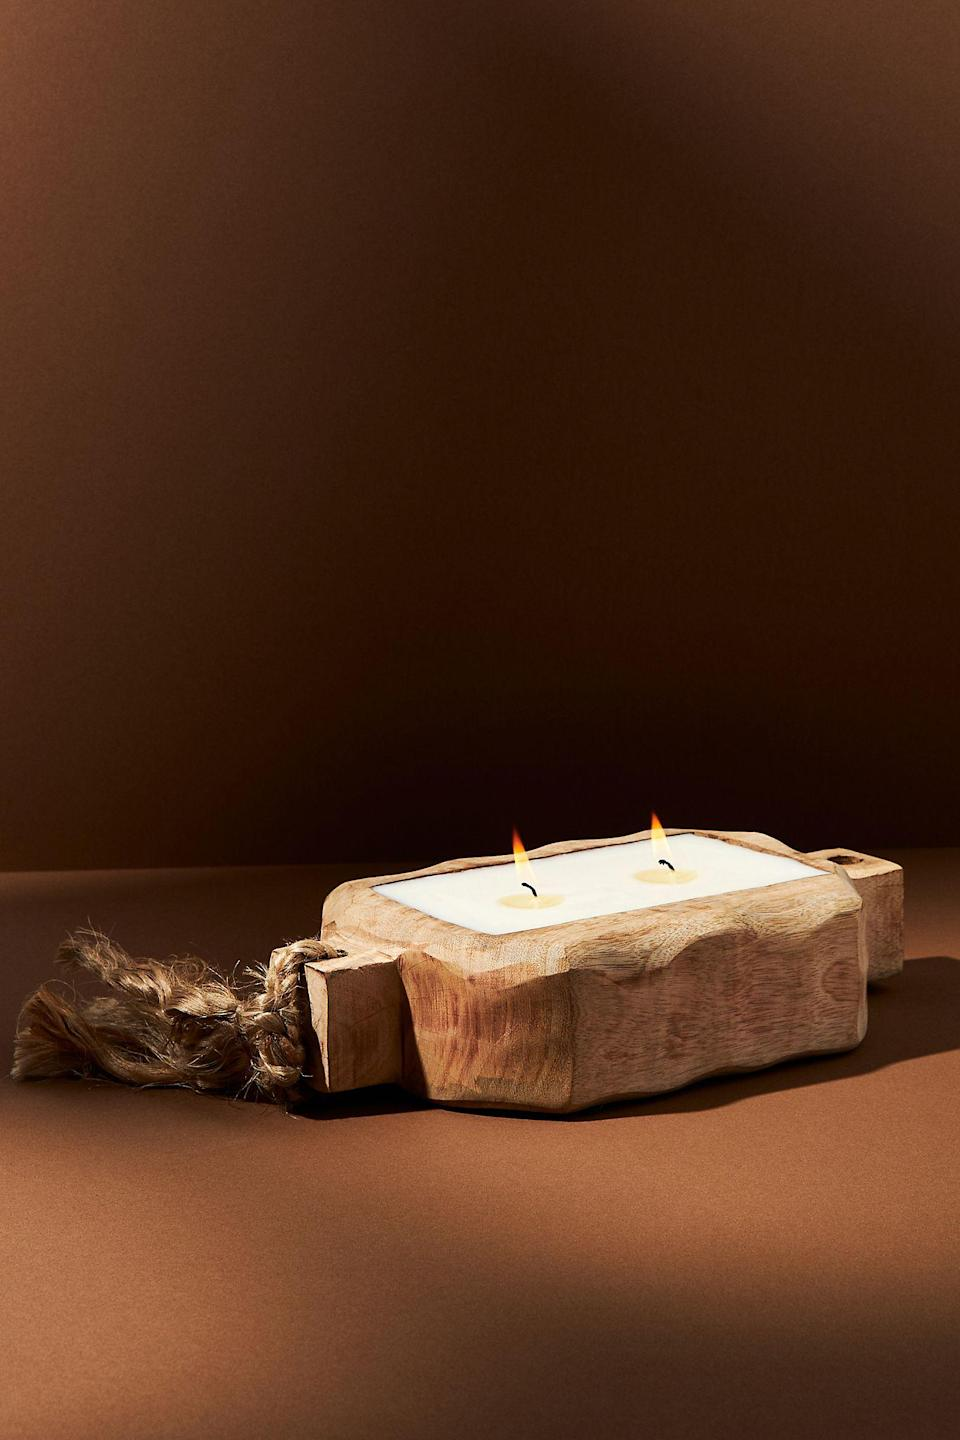 """<h3>Himalayan Handmade Candles Driftwood Tray Candle</h3><br>Choose between a sweet & earthy grapefruit pine aroma or a ginger sandalwood scent for a refreshing take on the classic fall candle. According to one reviewer, it's, """"rustic and unique and a beautiful piece,"""" while another happy customer says it's, """"perfect for her coffee table,"""" and worth every penny.<br><br><em>Shop <strong><a href=""""https://www.anthropologie.com/shop/driftwood-tray-candle"""" rel=""""nofollow noopener"""" target=""""_blank"""" data-ylk=""""slk:Anthropologie"""" class=""""link rapid-noclick-resp"""">Anthropologie</a></strong></em><br><br><strong>Himalayan Handmade Candles</strong> Driftwood Tray Candle, $, available at <a href=""""https://go.skimresources.com/?id=30283X879131&url=https%3A%2F%2Fwww.anthropologie.com%2Fshop%2Fdriftwood-tray-candle"""" rel=""""nofollow noopener"""" target=""""_blank"""" data-ylk=""""slk:Anthropologie"""" class=""""link rapid-noclick-resp"""">Anthropologie</a>"""